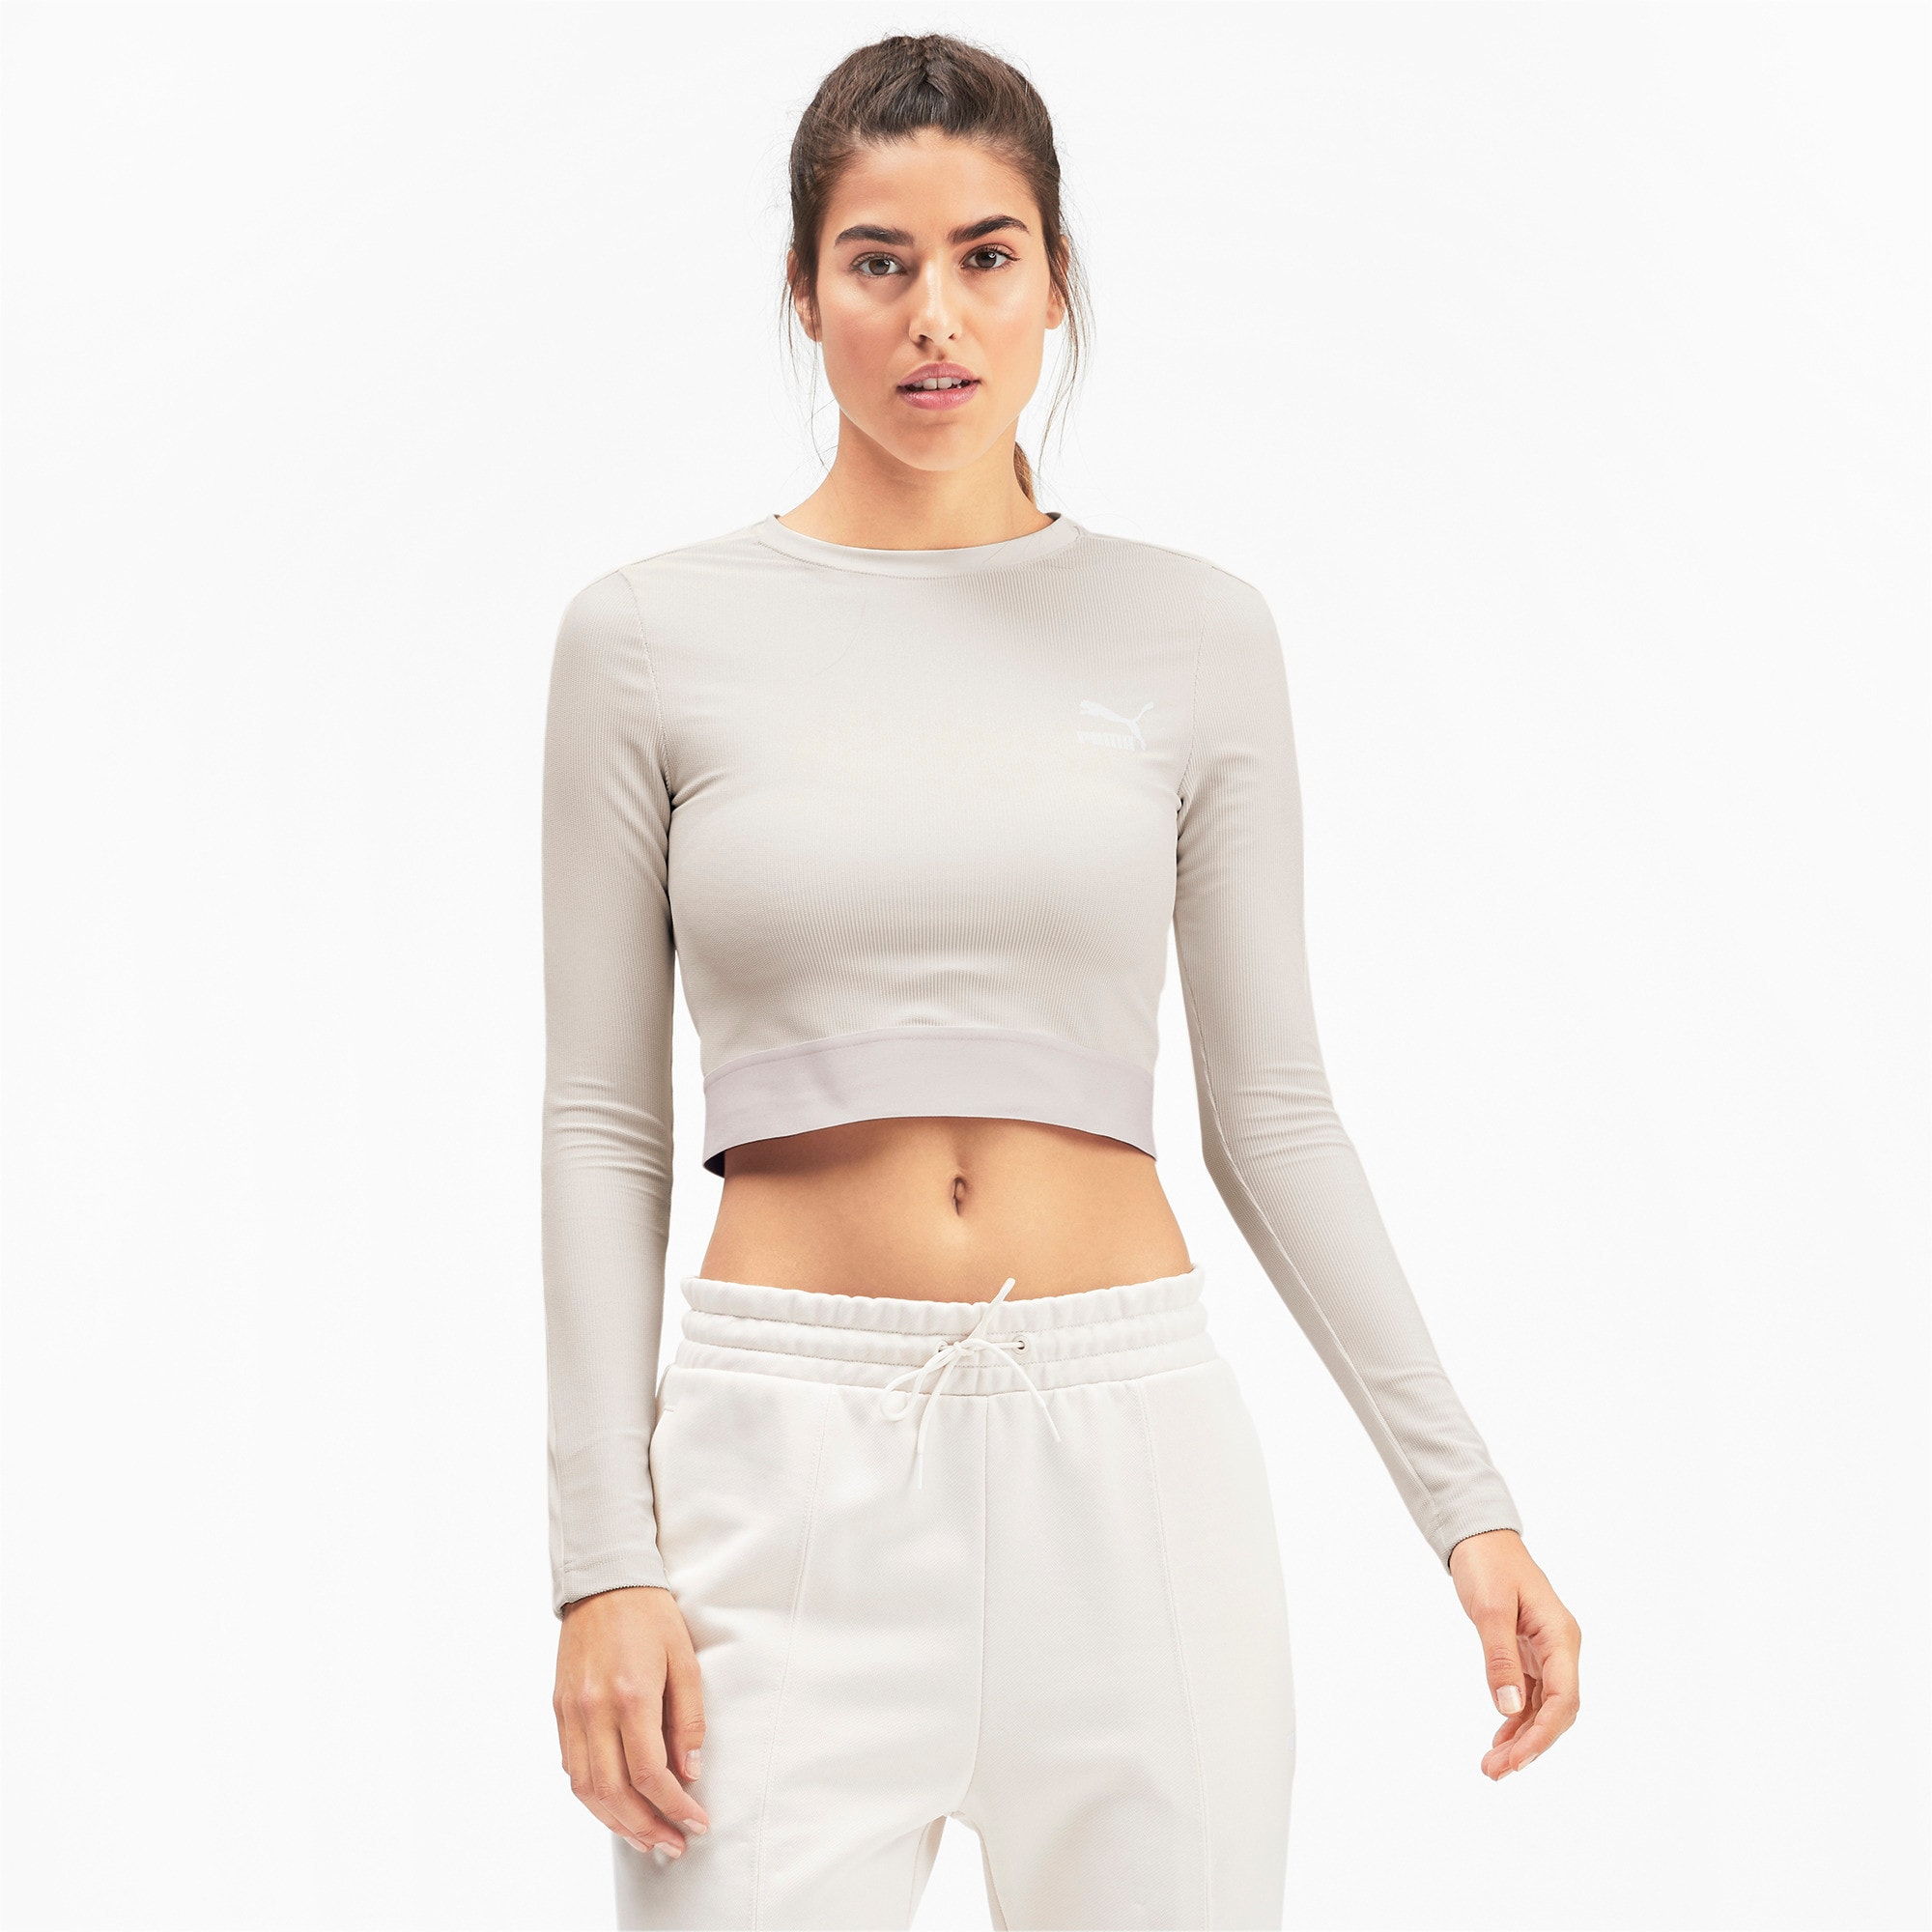 Thumbnail 1 of Classics Rib Cropped Long Sleeve Women's Top, Pastel Parchment, medium-SEA